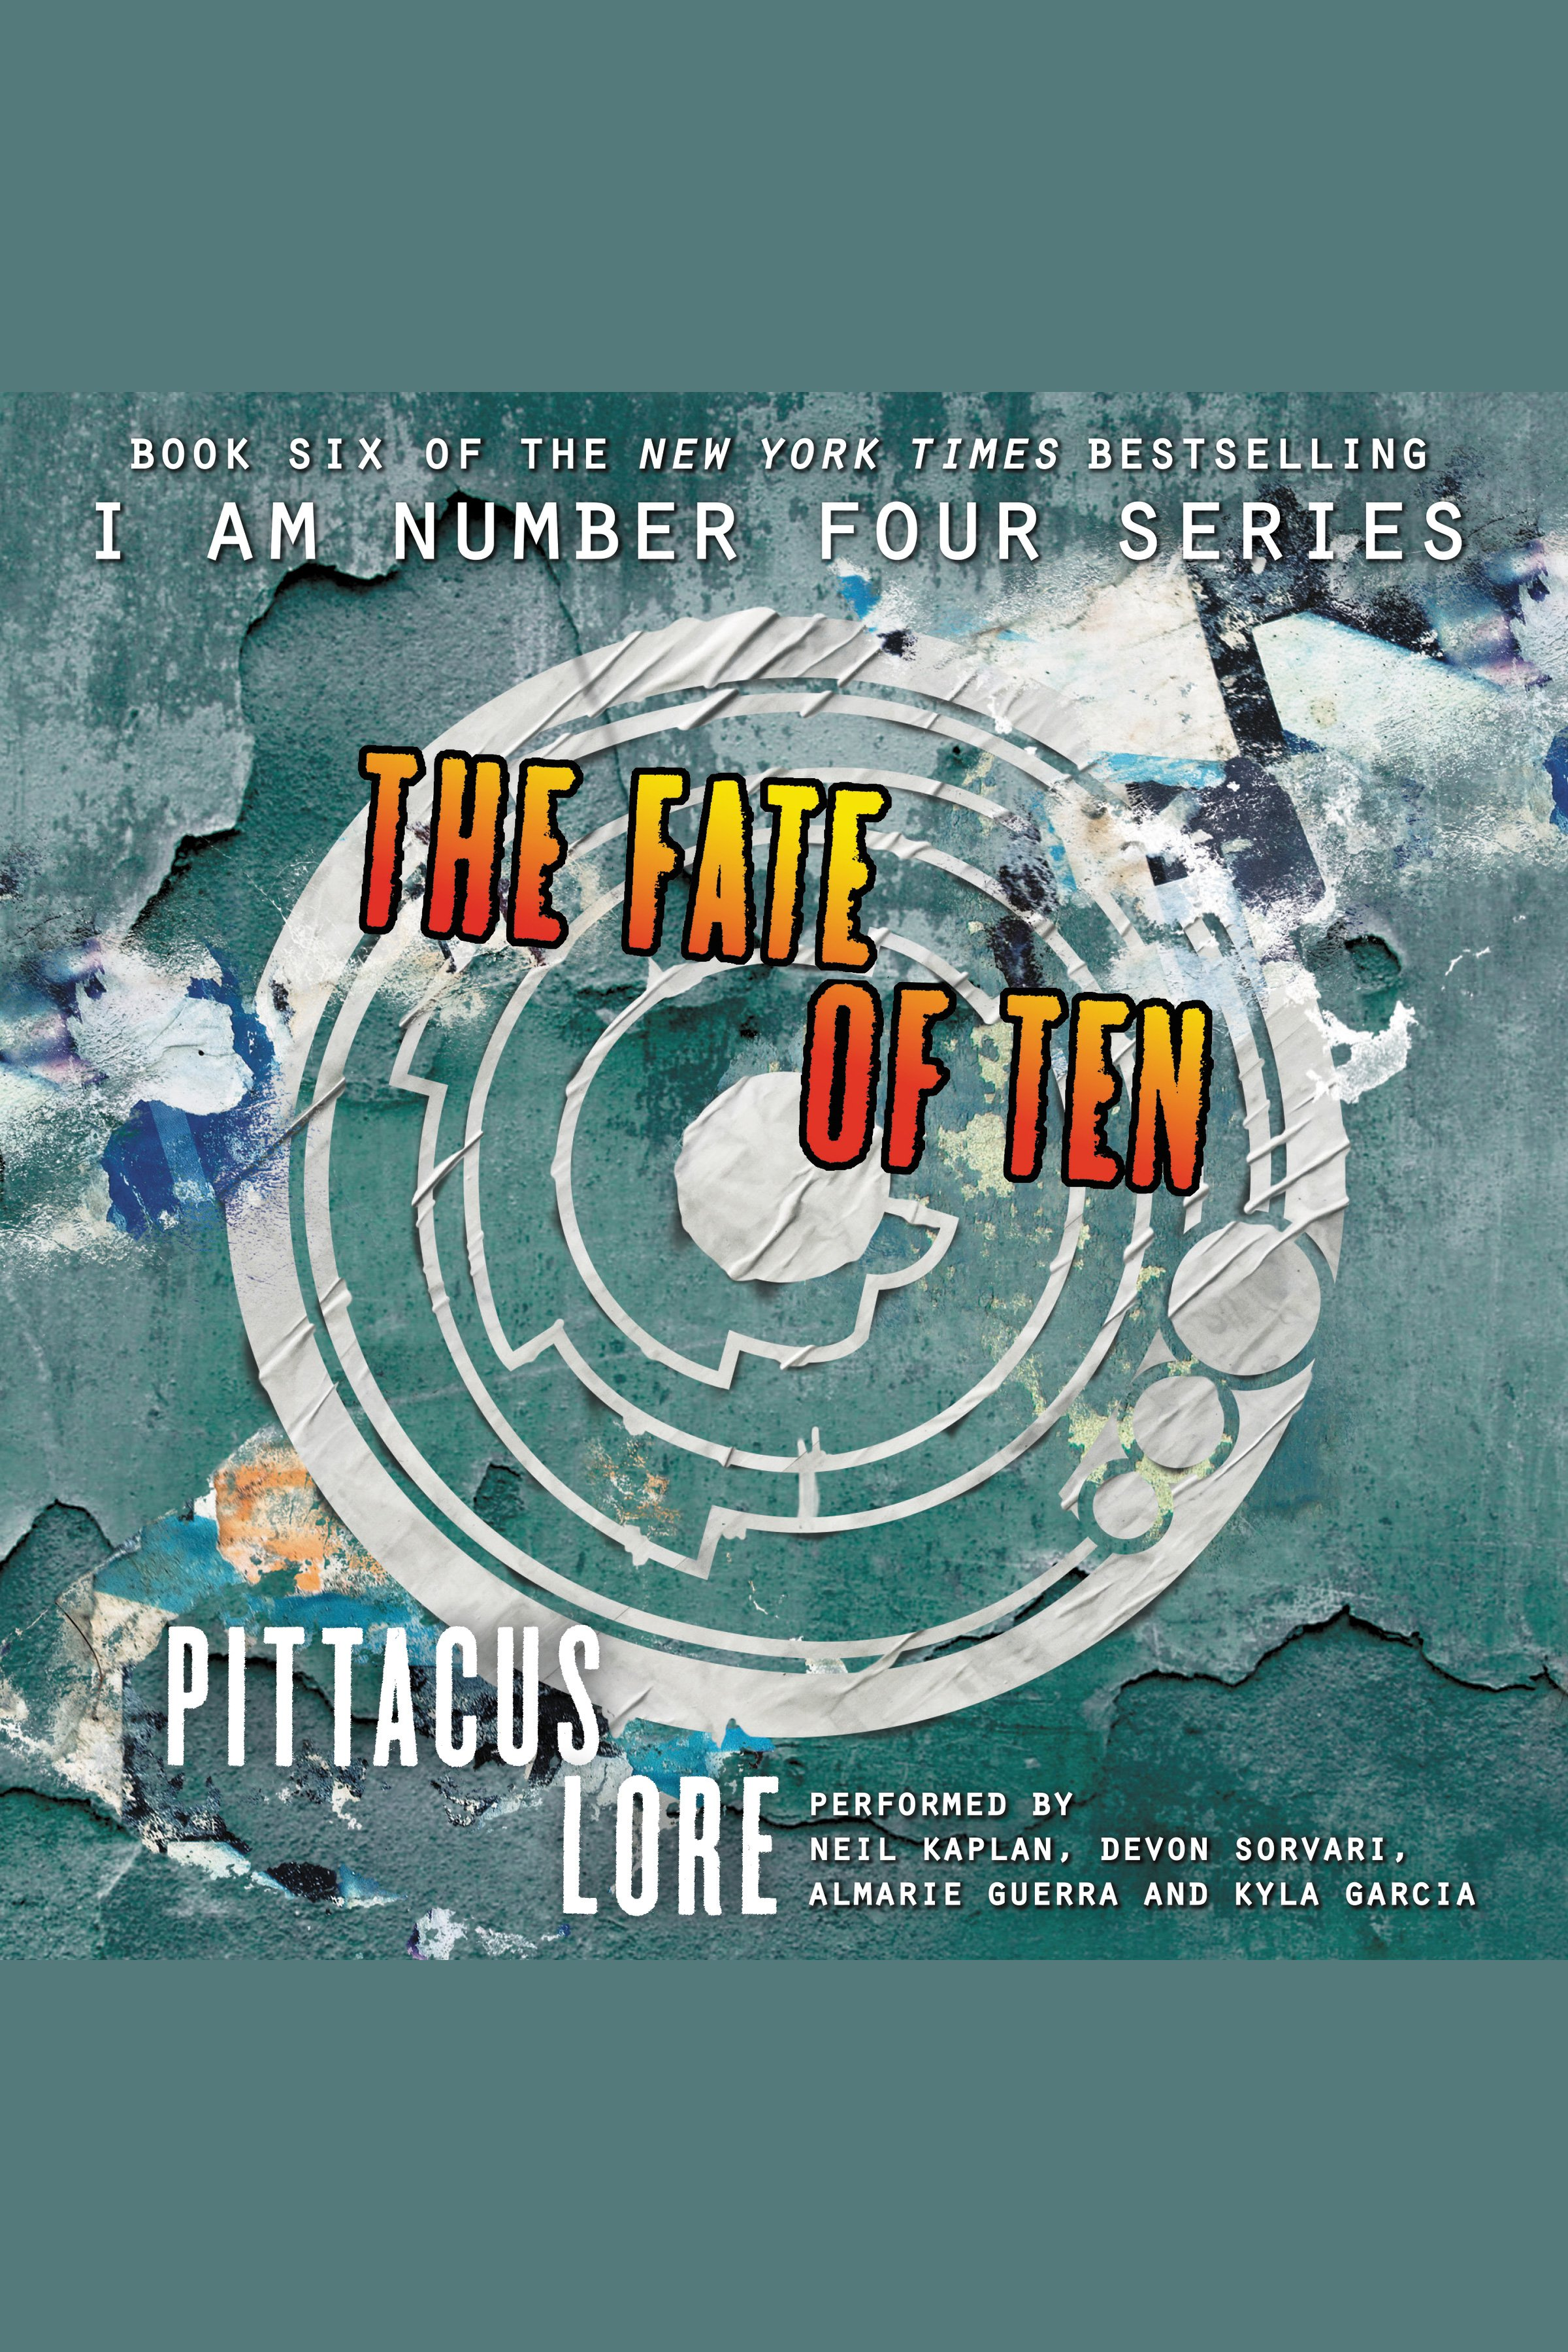 The fate of ten cover image